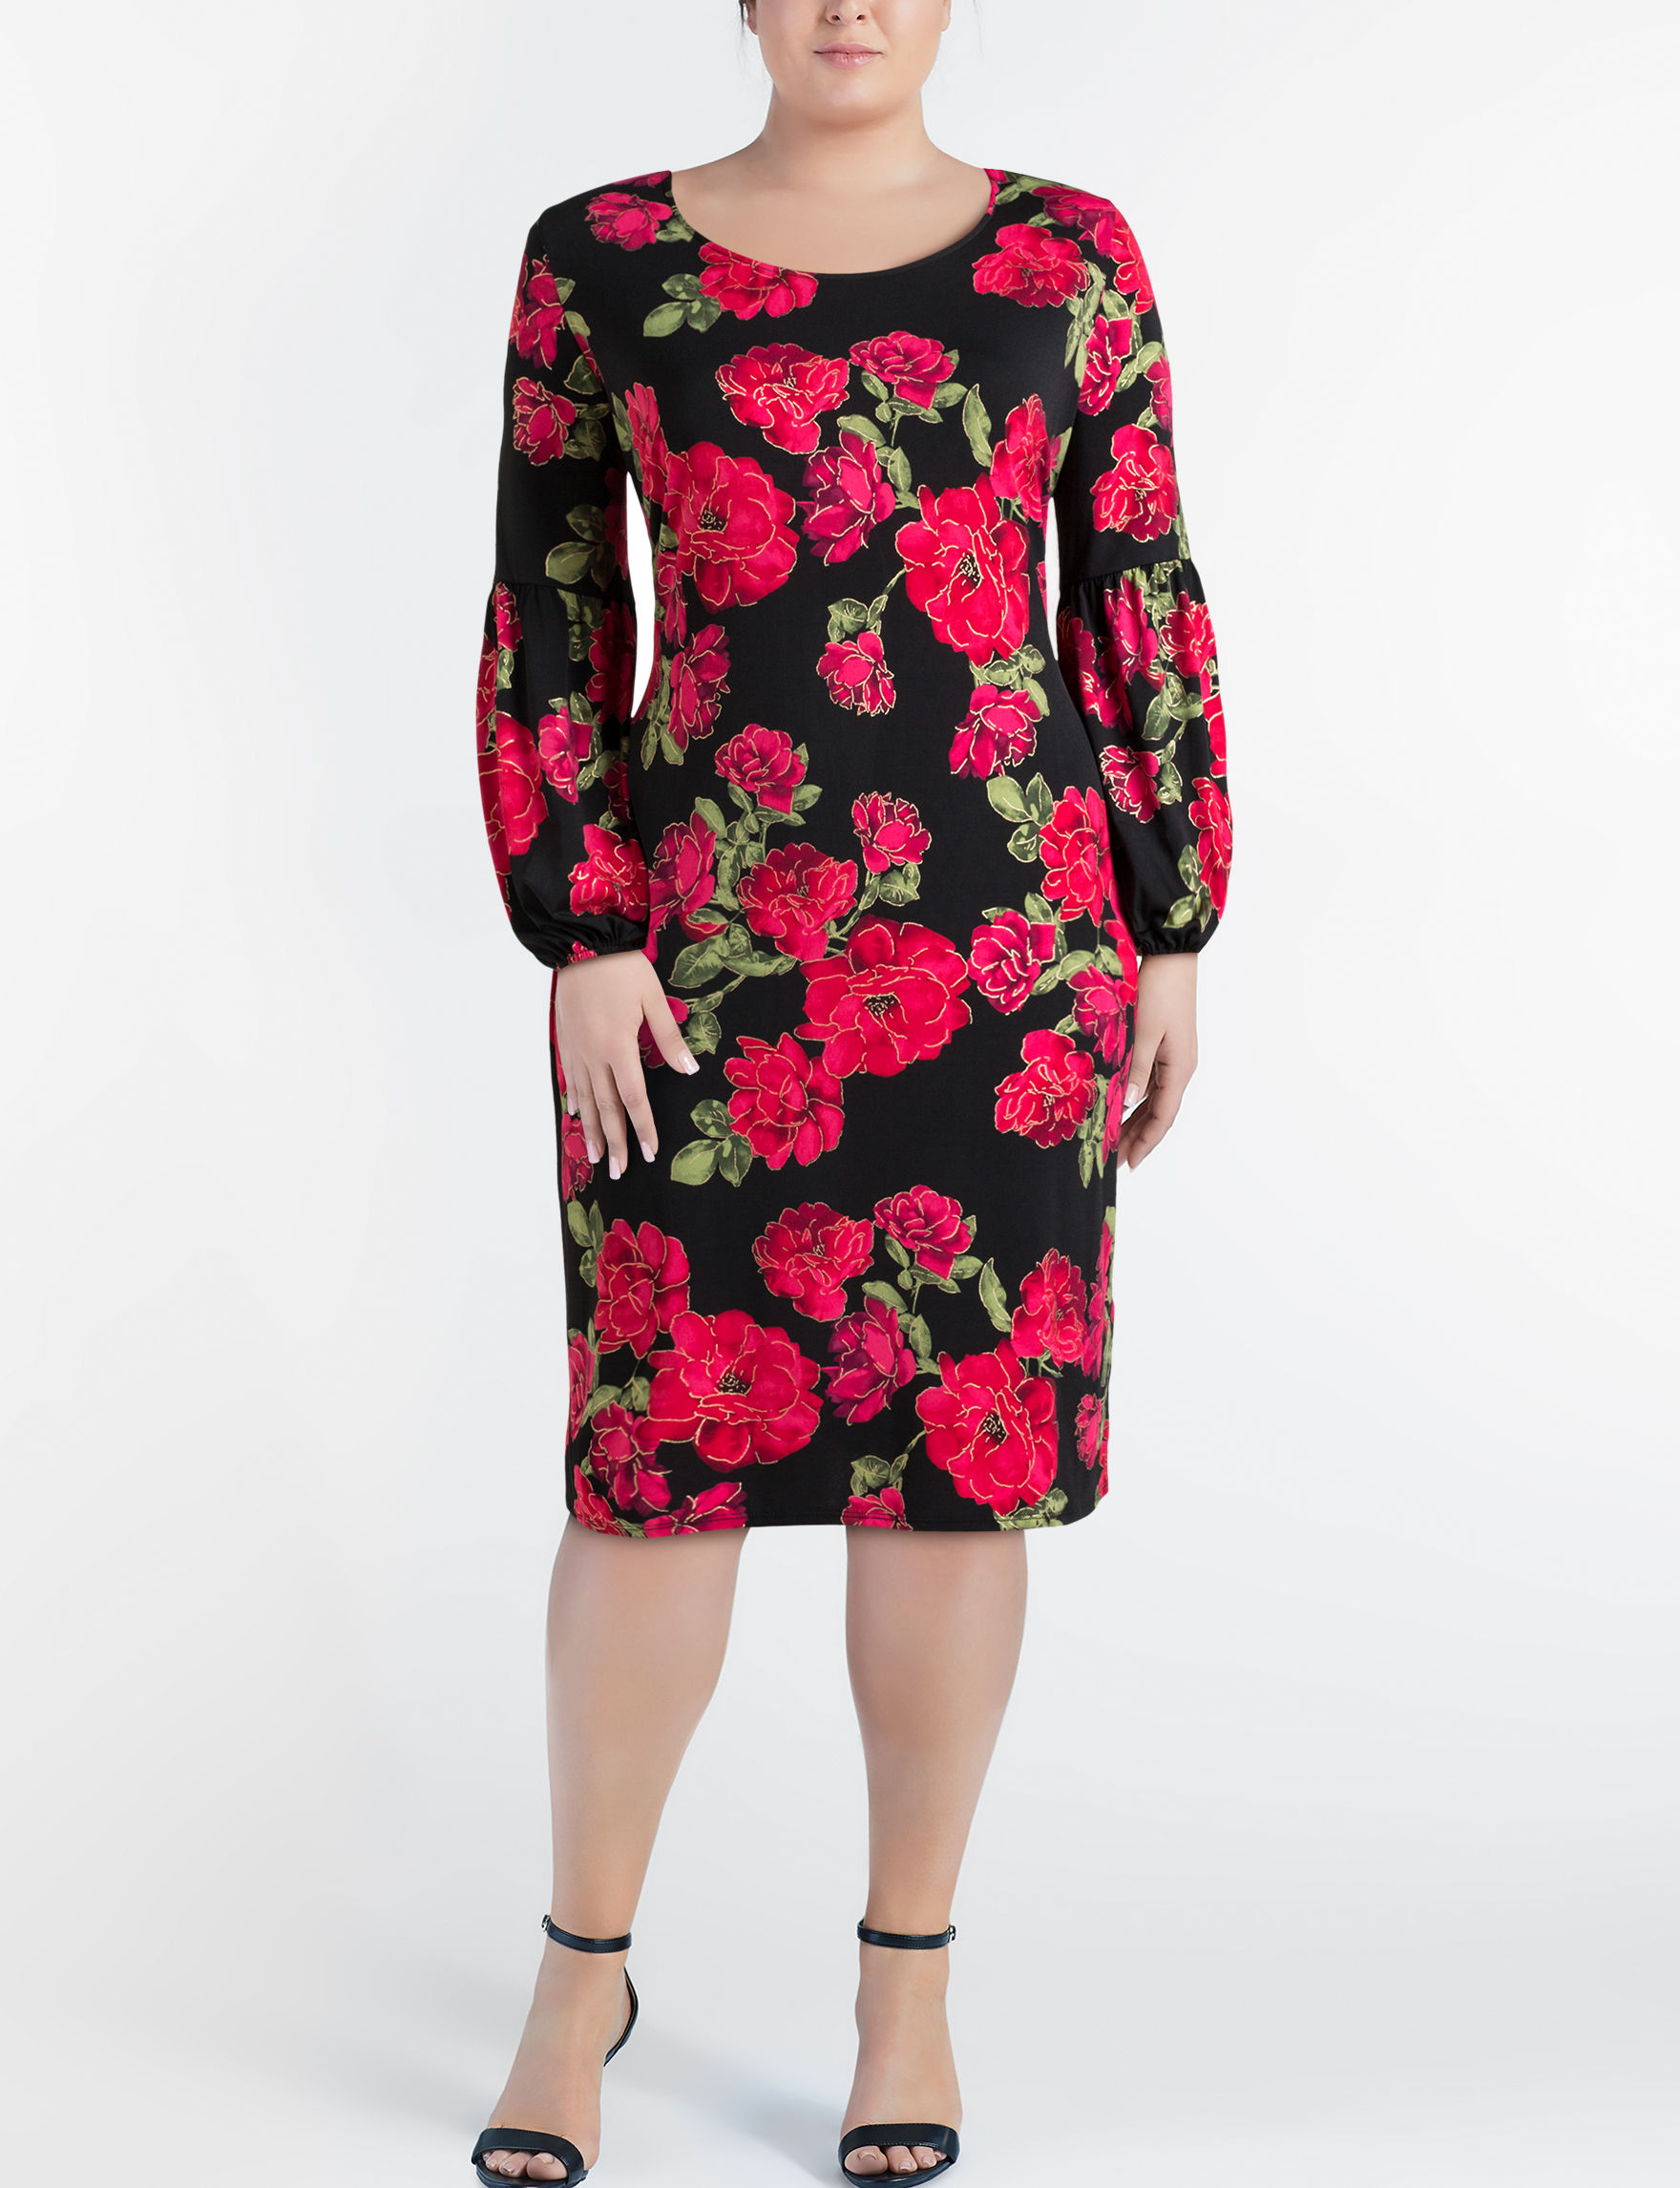 Glamour Black / Red Everyday & Casual Shift Dresses